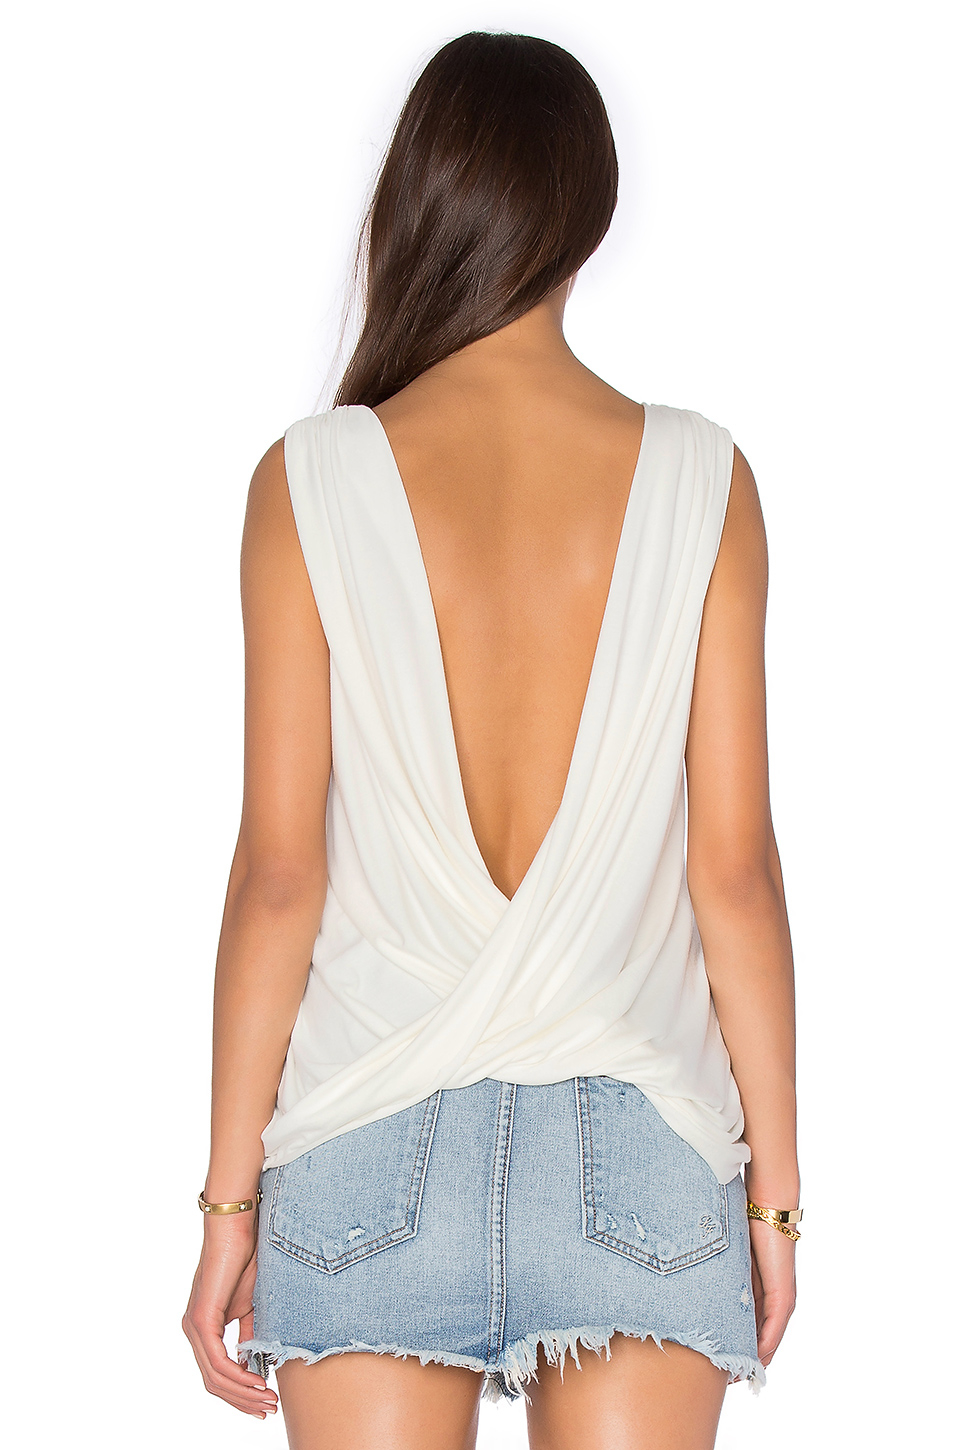 Lyst - Rachel Pally Sleeveless Castaway Top in White